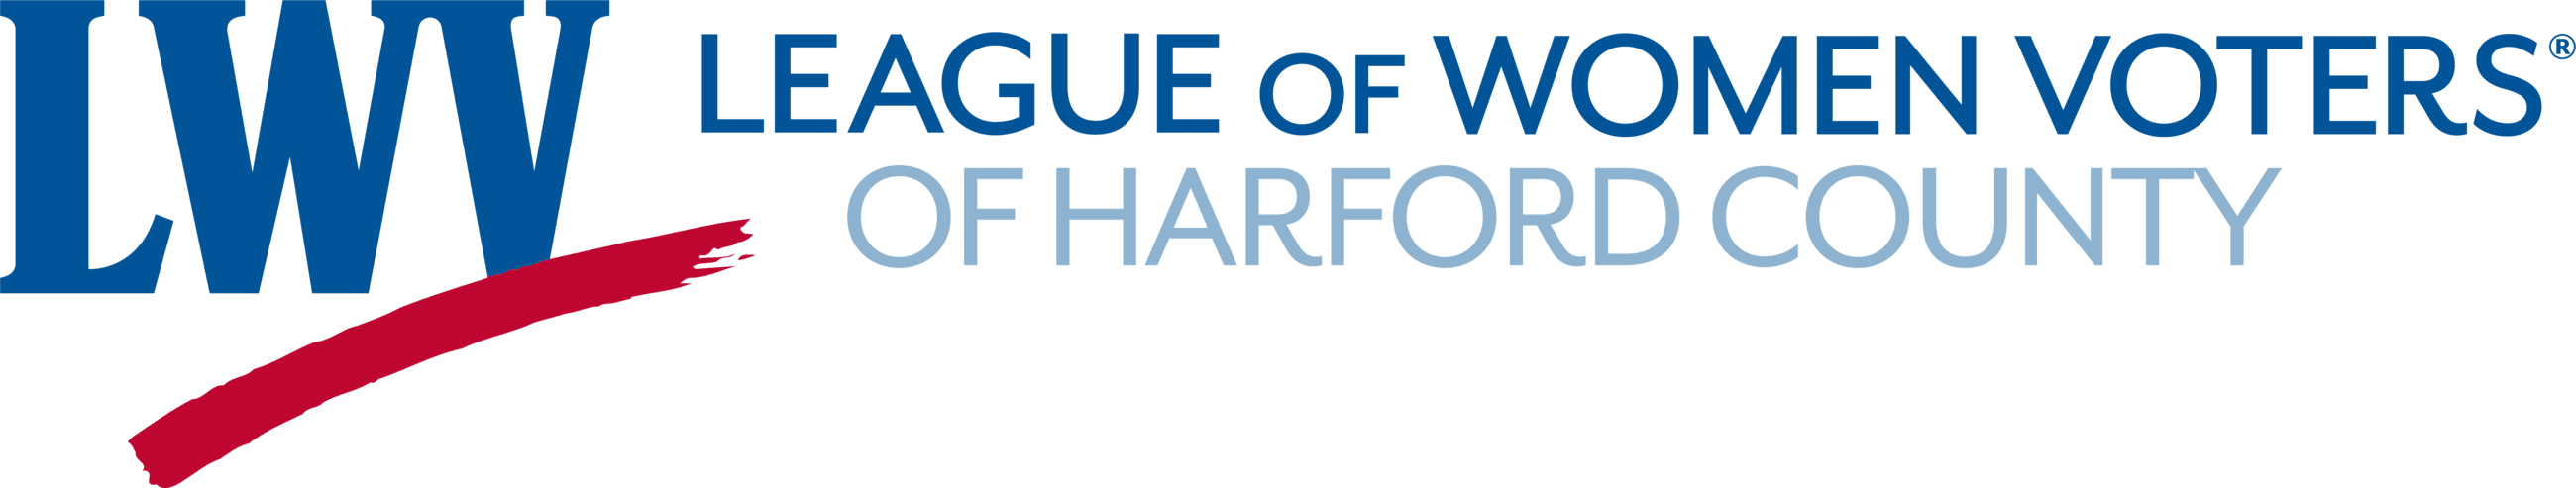 League of Women Voters Harford County Logo Opens in new window